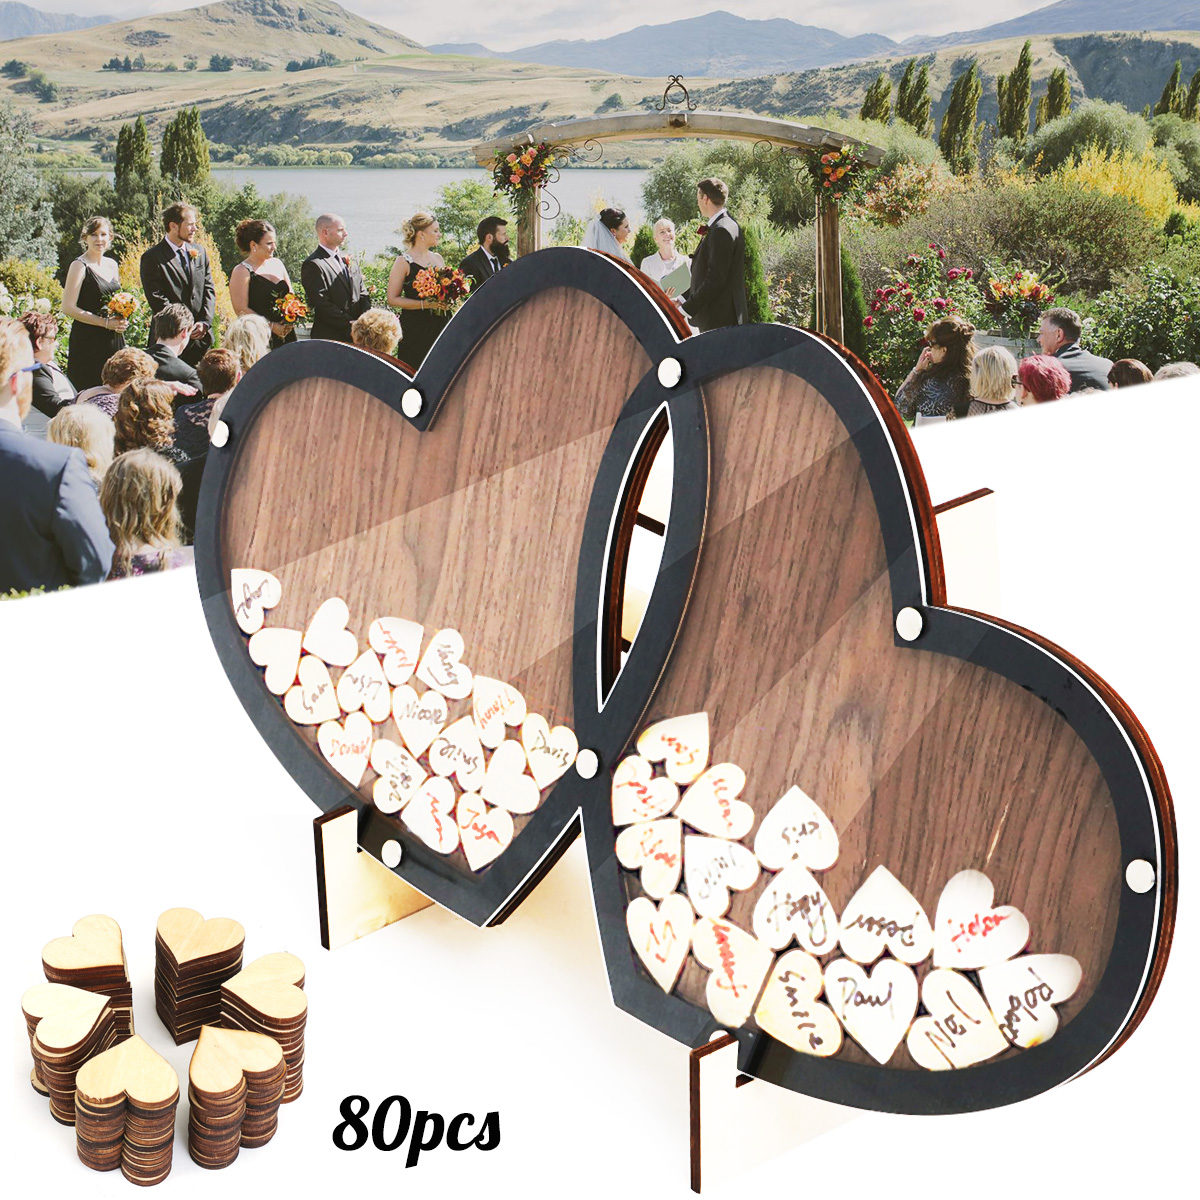 Wooden Hearts Wedding Guest Book Double-Heart Frame Holder Stand Visit Sign Book Guestbook Party Decor Ornaments with 80 HeartsWooden Hearts Wedding Guest Book Double-Heart Frame Holder Stand Visit Sign Book Guestbook Party Decor Ornaments with 80 Hearts